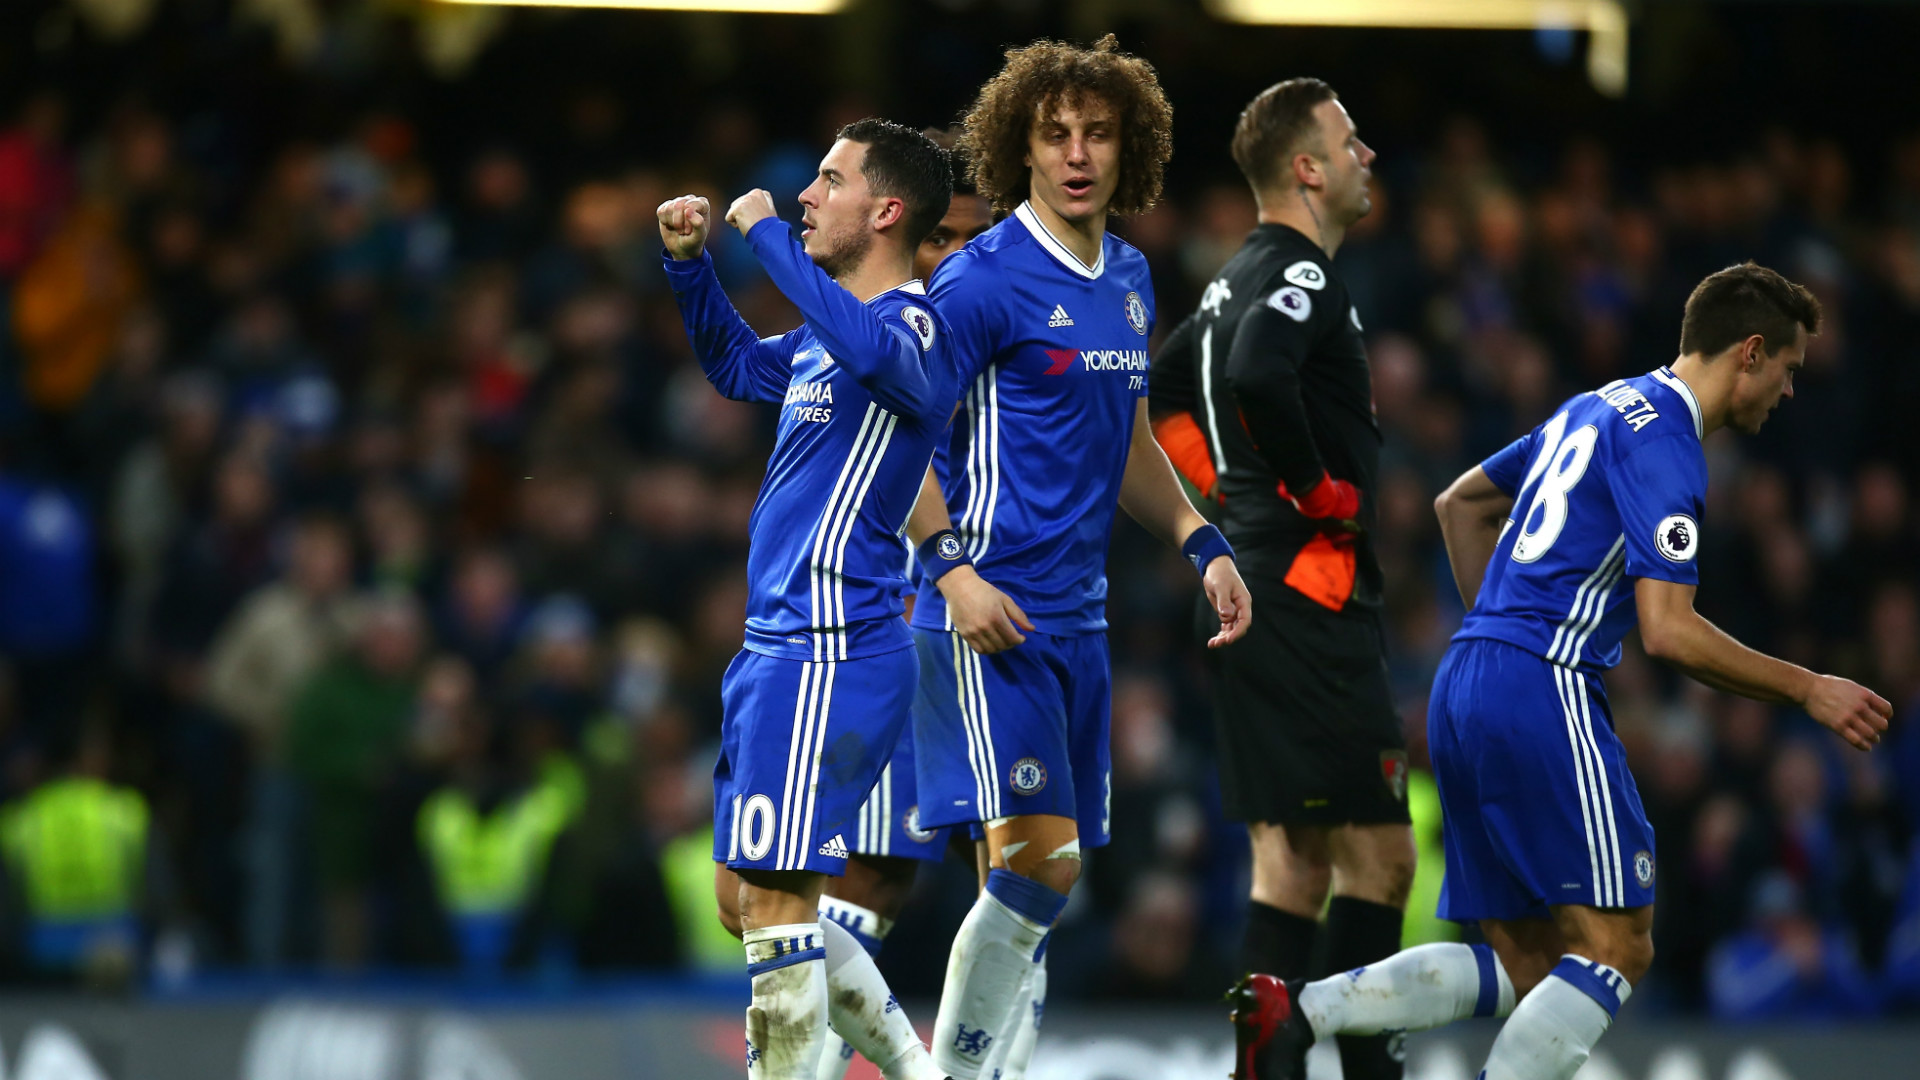 PL roundup: Chelsea earn 12th straight win, Man Utd comfortable at home